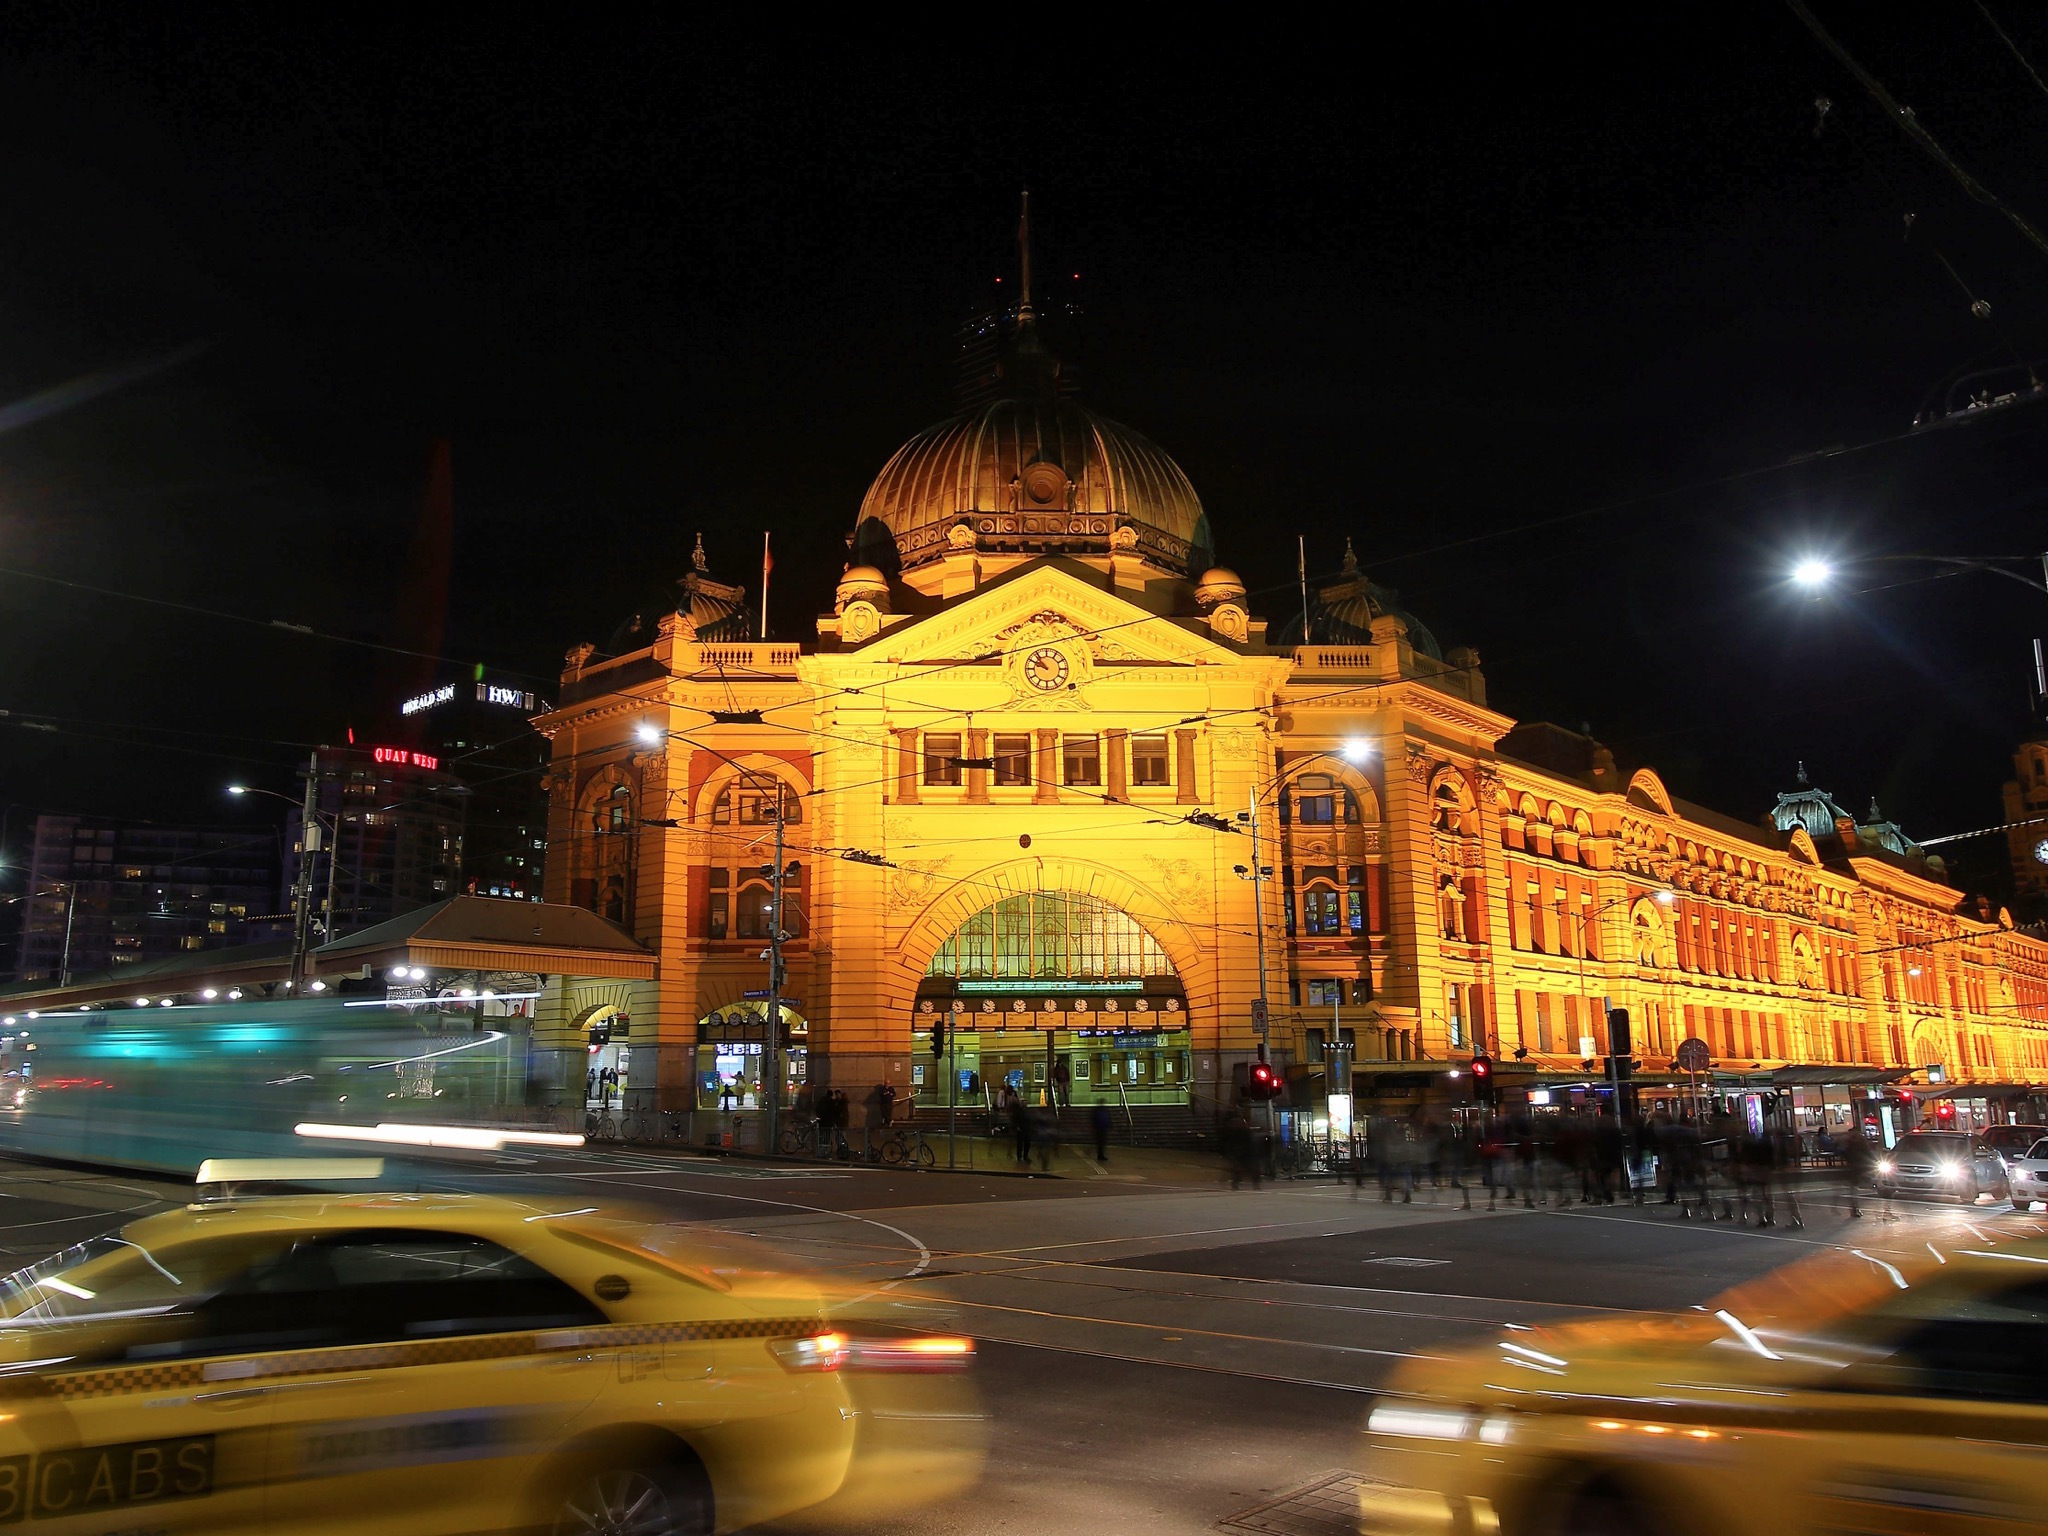 Flinders Street Station at night